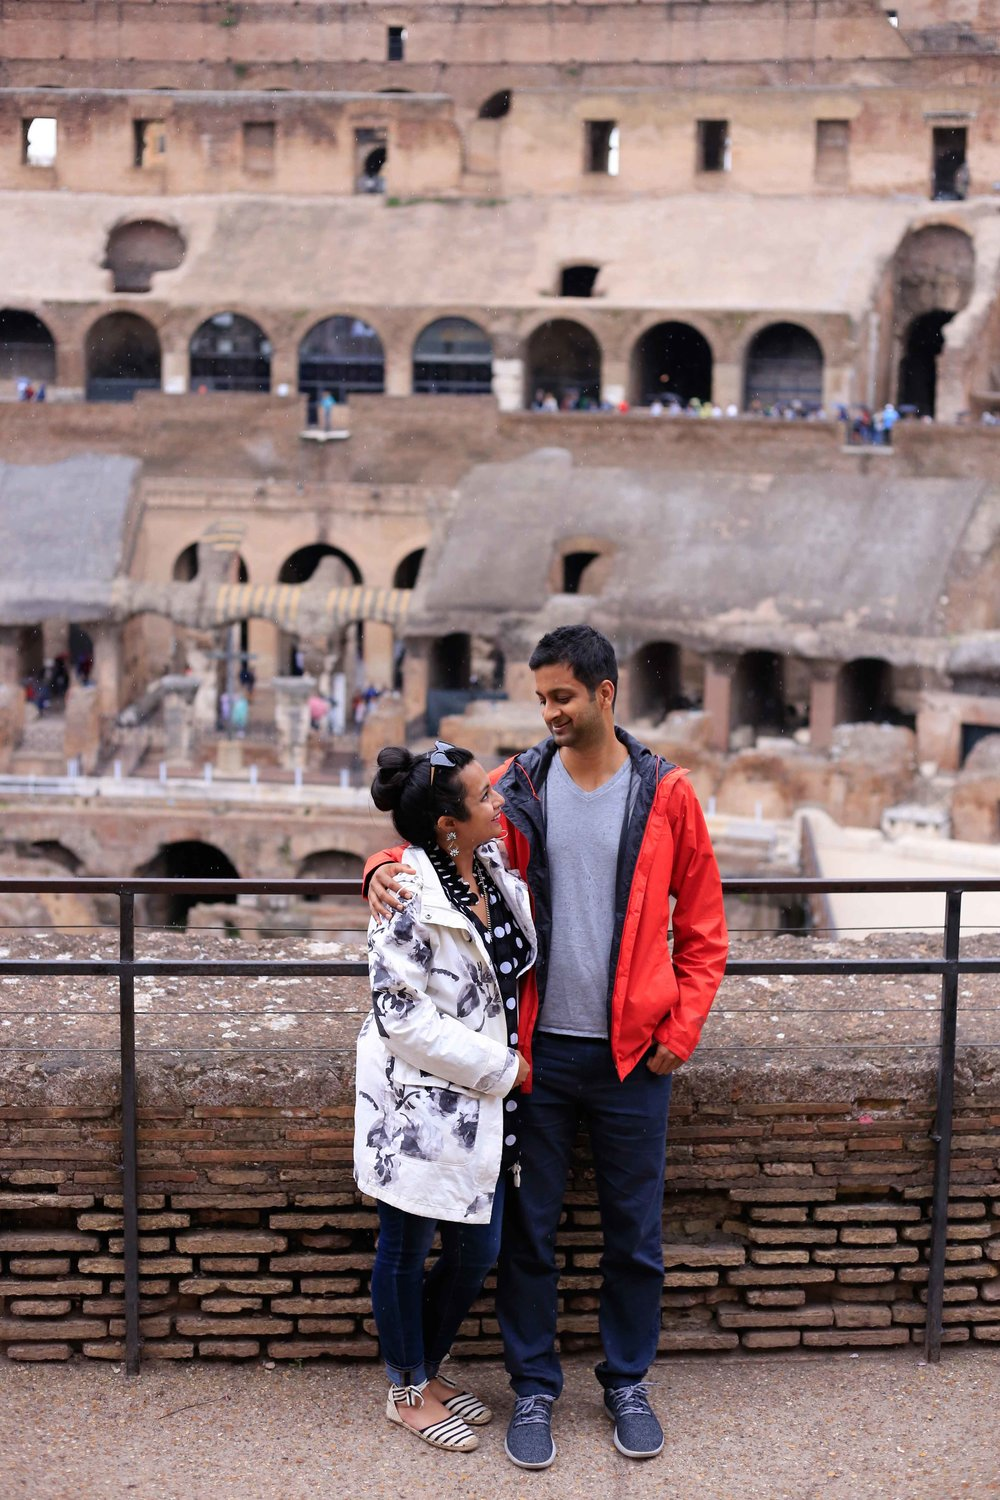 Colosseum Guide Roadtrip through Italy Tuscany Travel Guide Charisma Shah